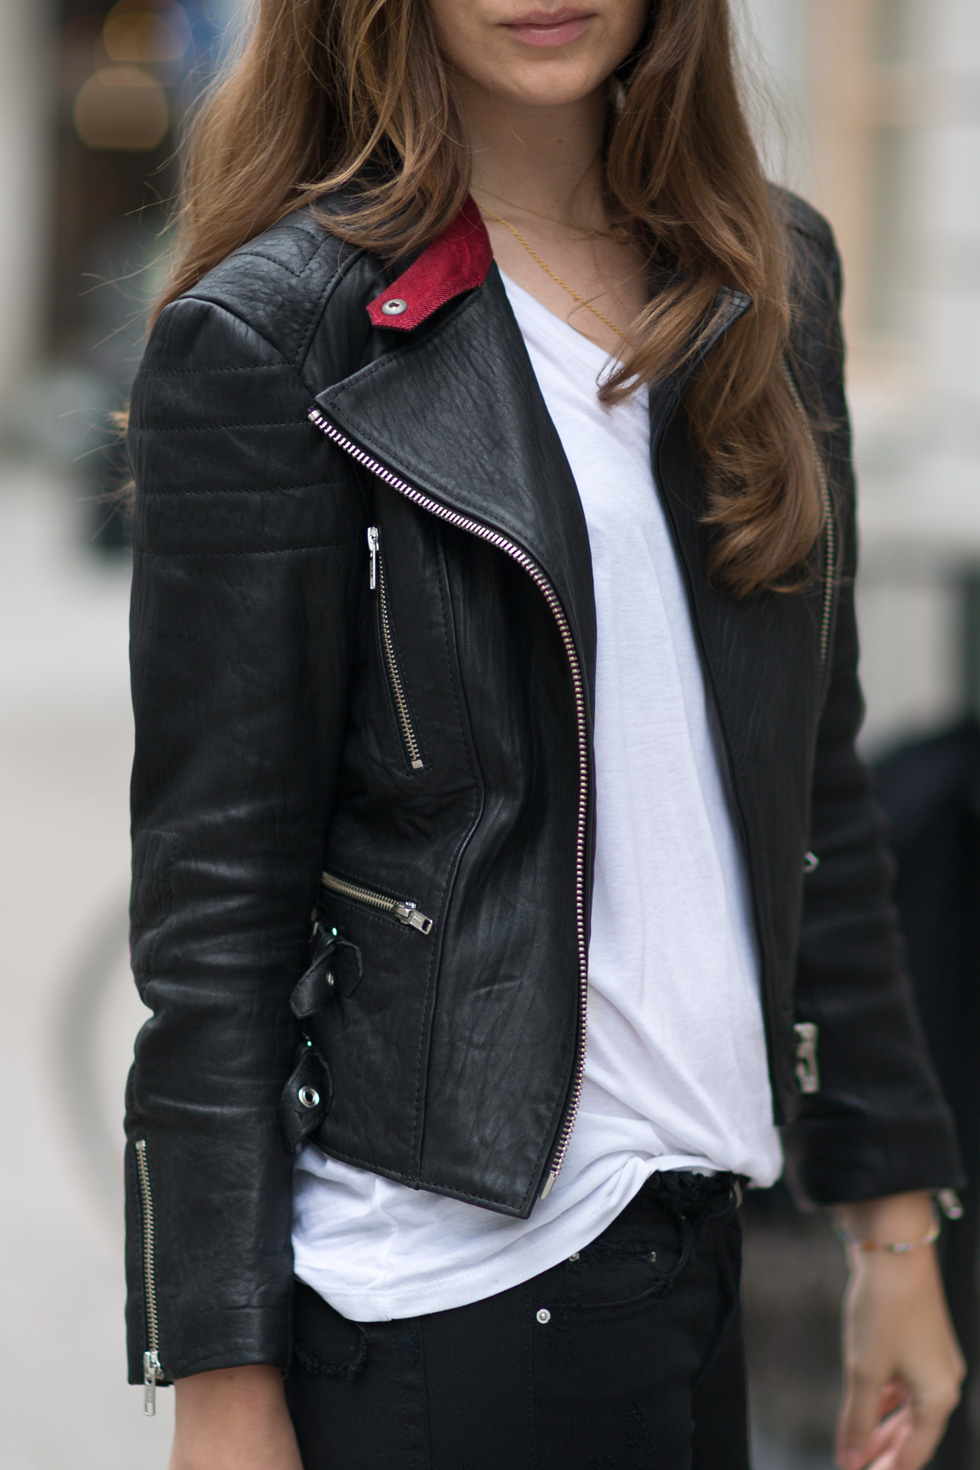 Biker jackets are without a doubt the most iconic of all leather jacket styles. Once a symbol of rebellion and non-conformism, the biker jacket has evolved into one of the most popular items of clothing .